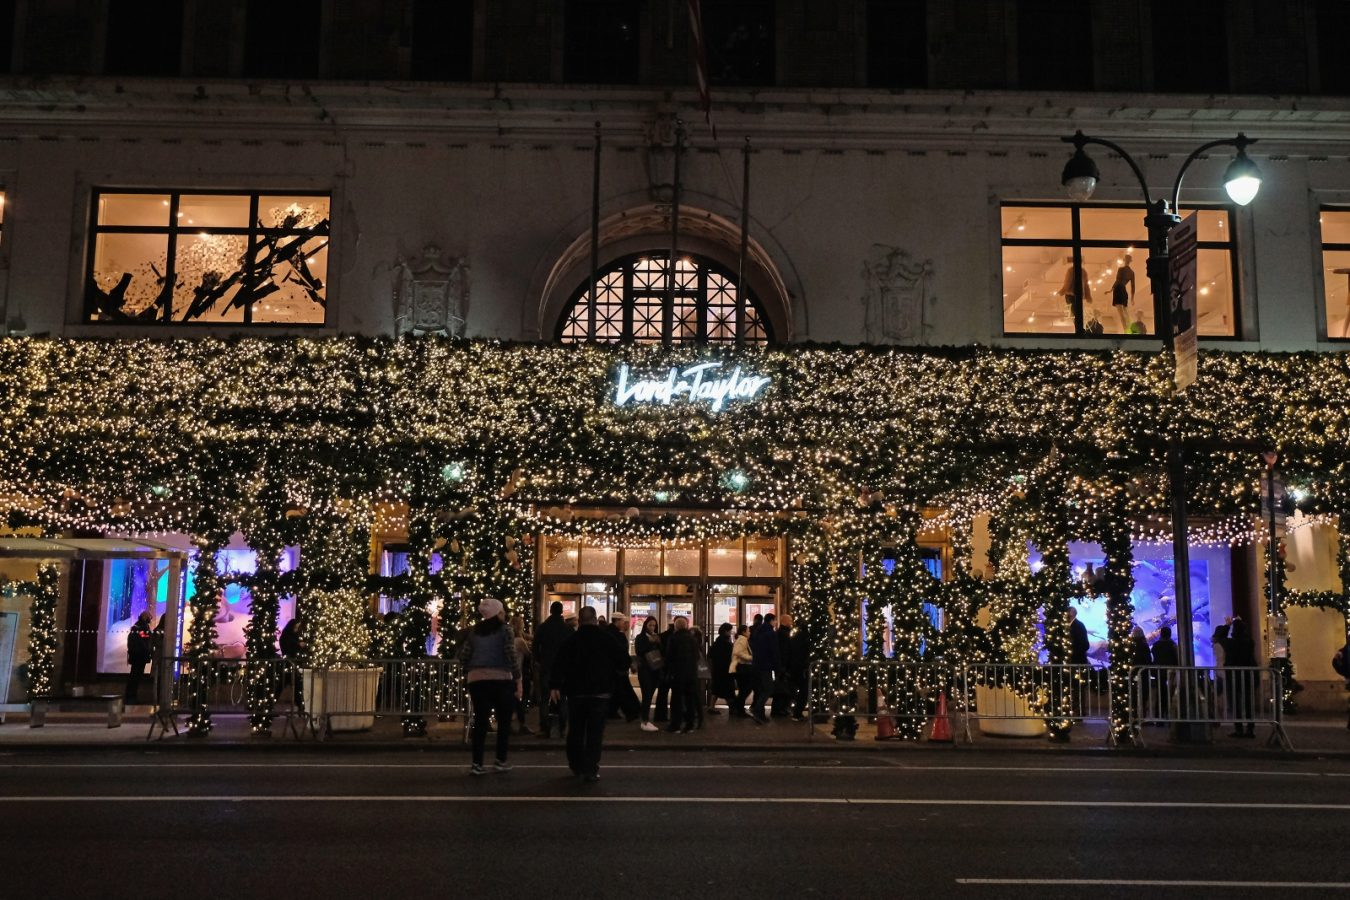 On the 8th day of Christmas… 5th Avenue Holiday Window Displays